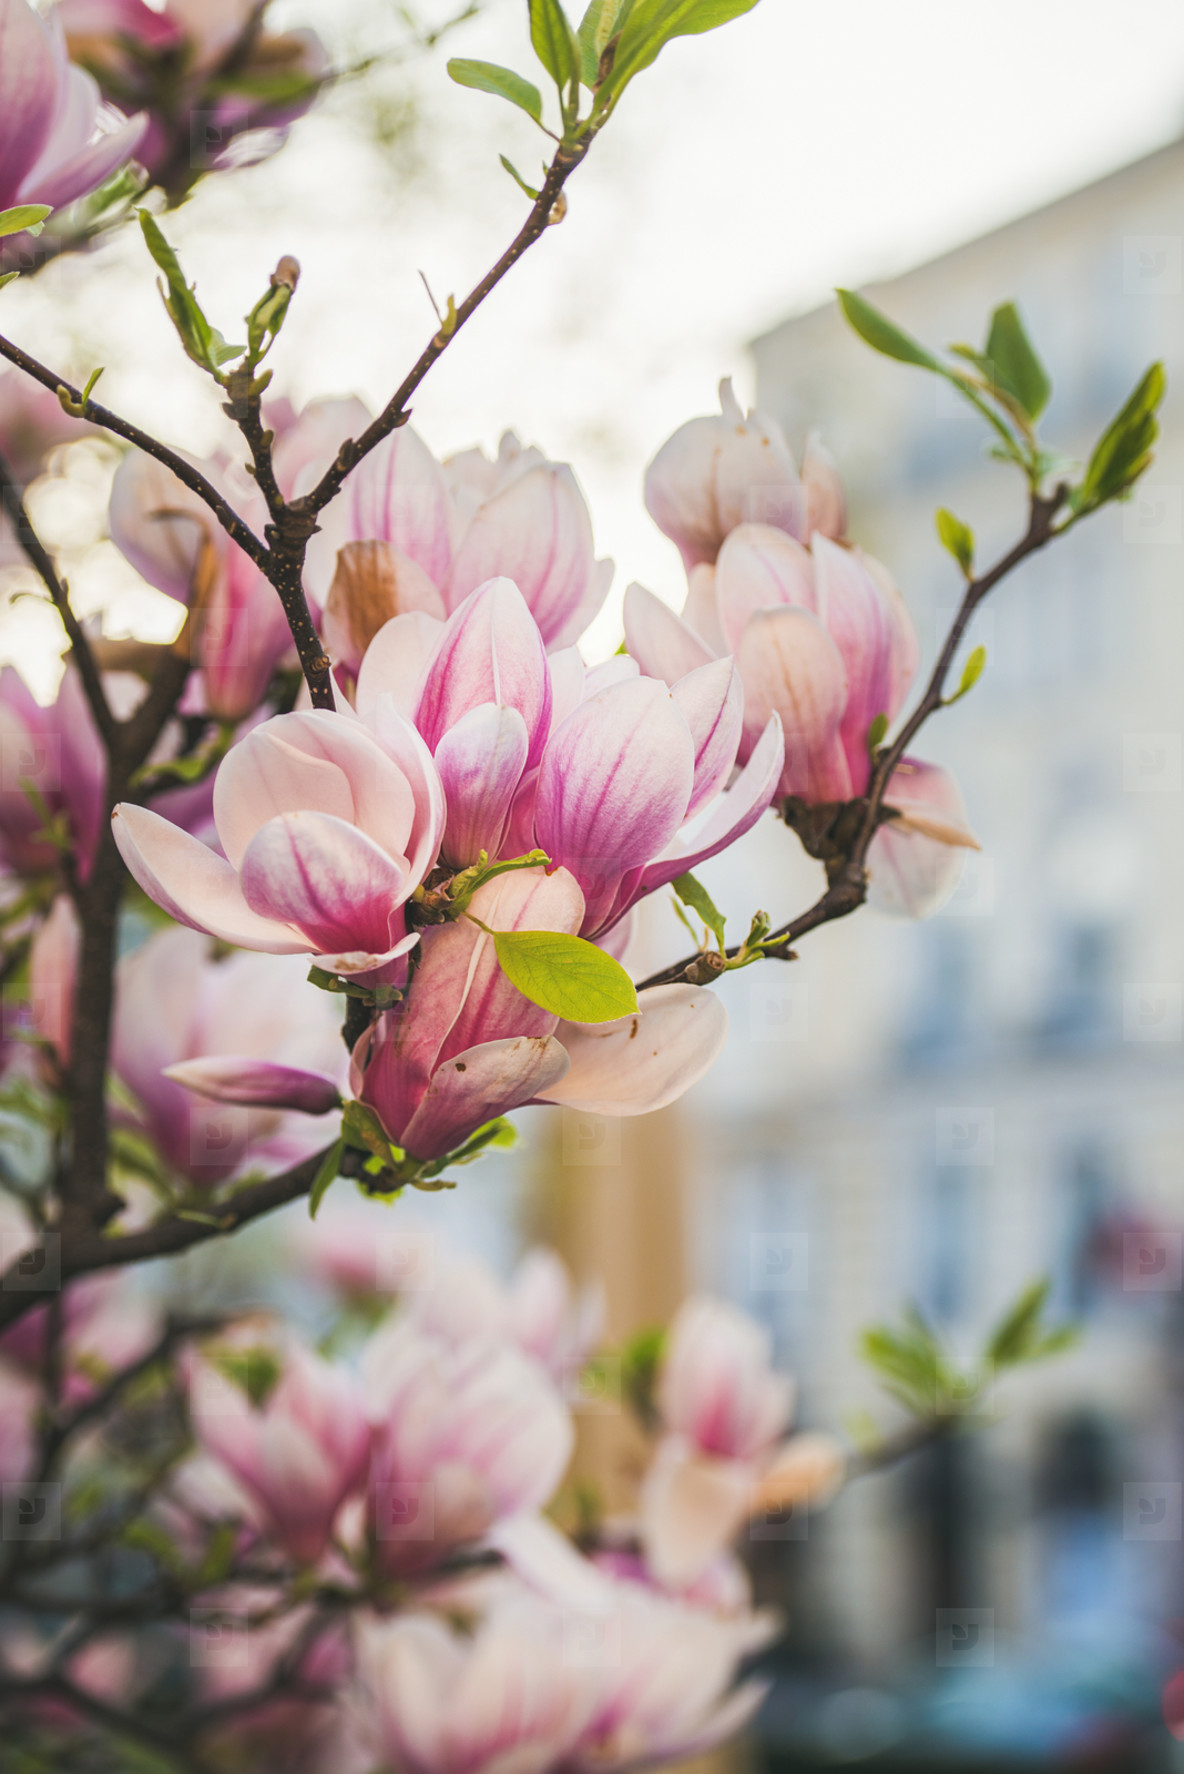 Photos Blooming Magnolia Tree With Flowers Youworkforthem